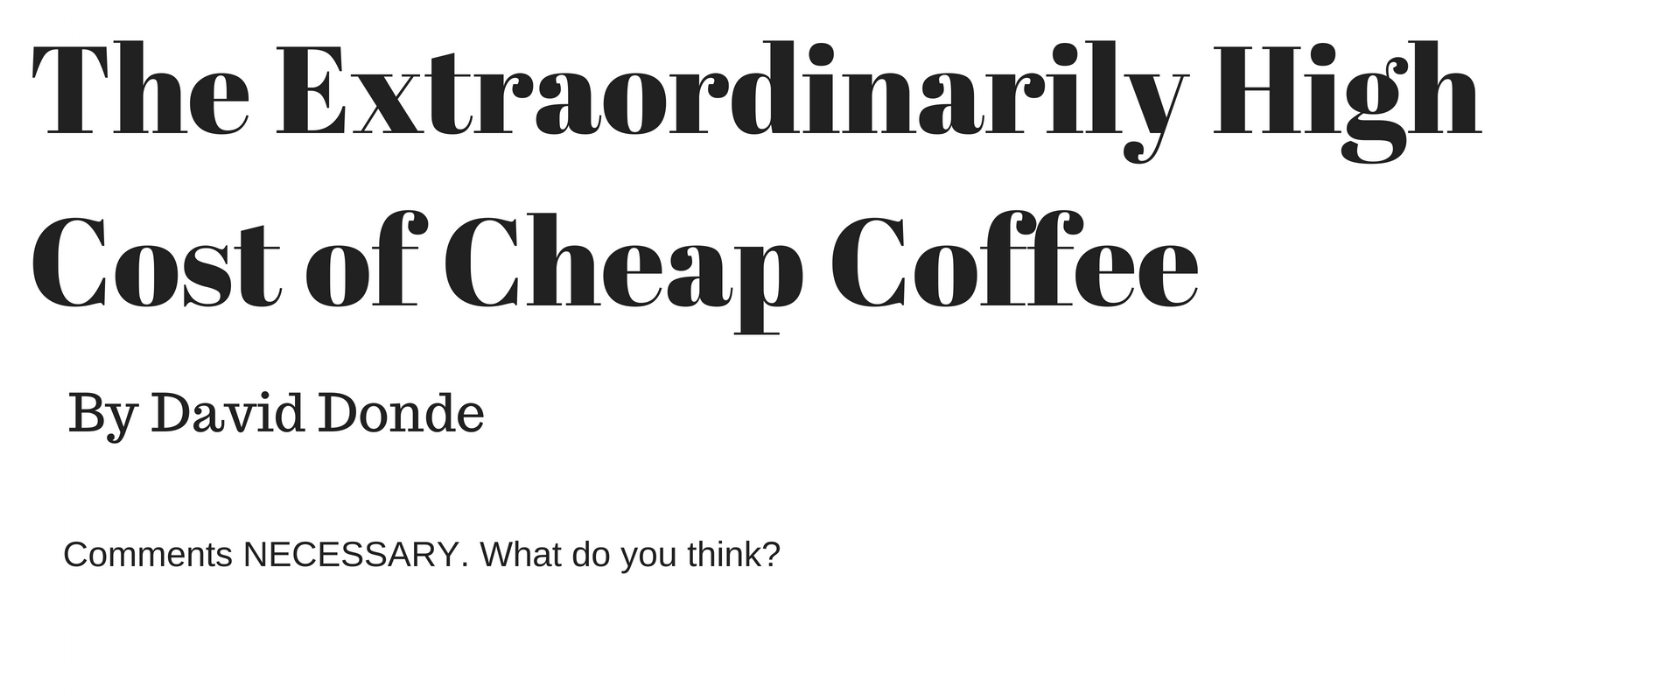 The Extraordinarily High Cost of Cheap Coffee